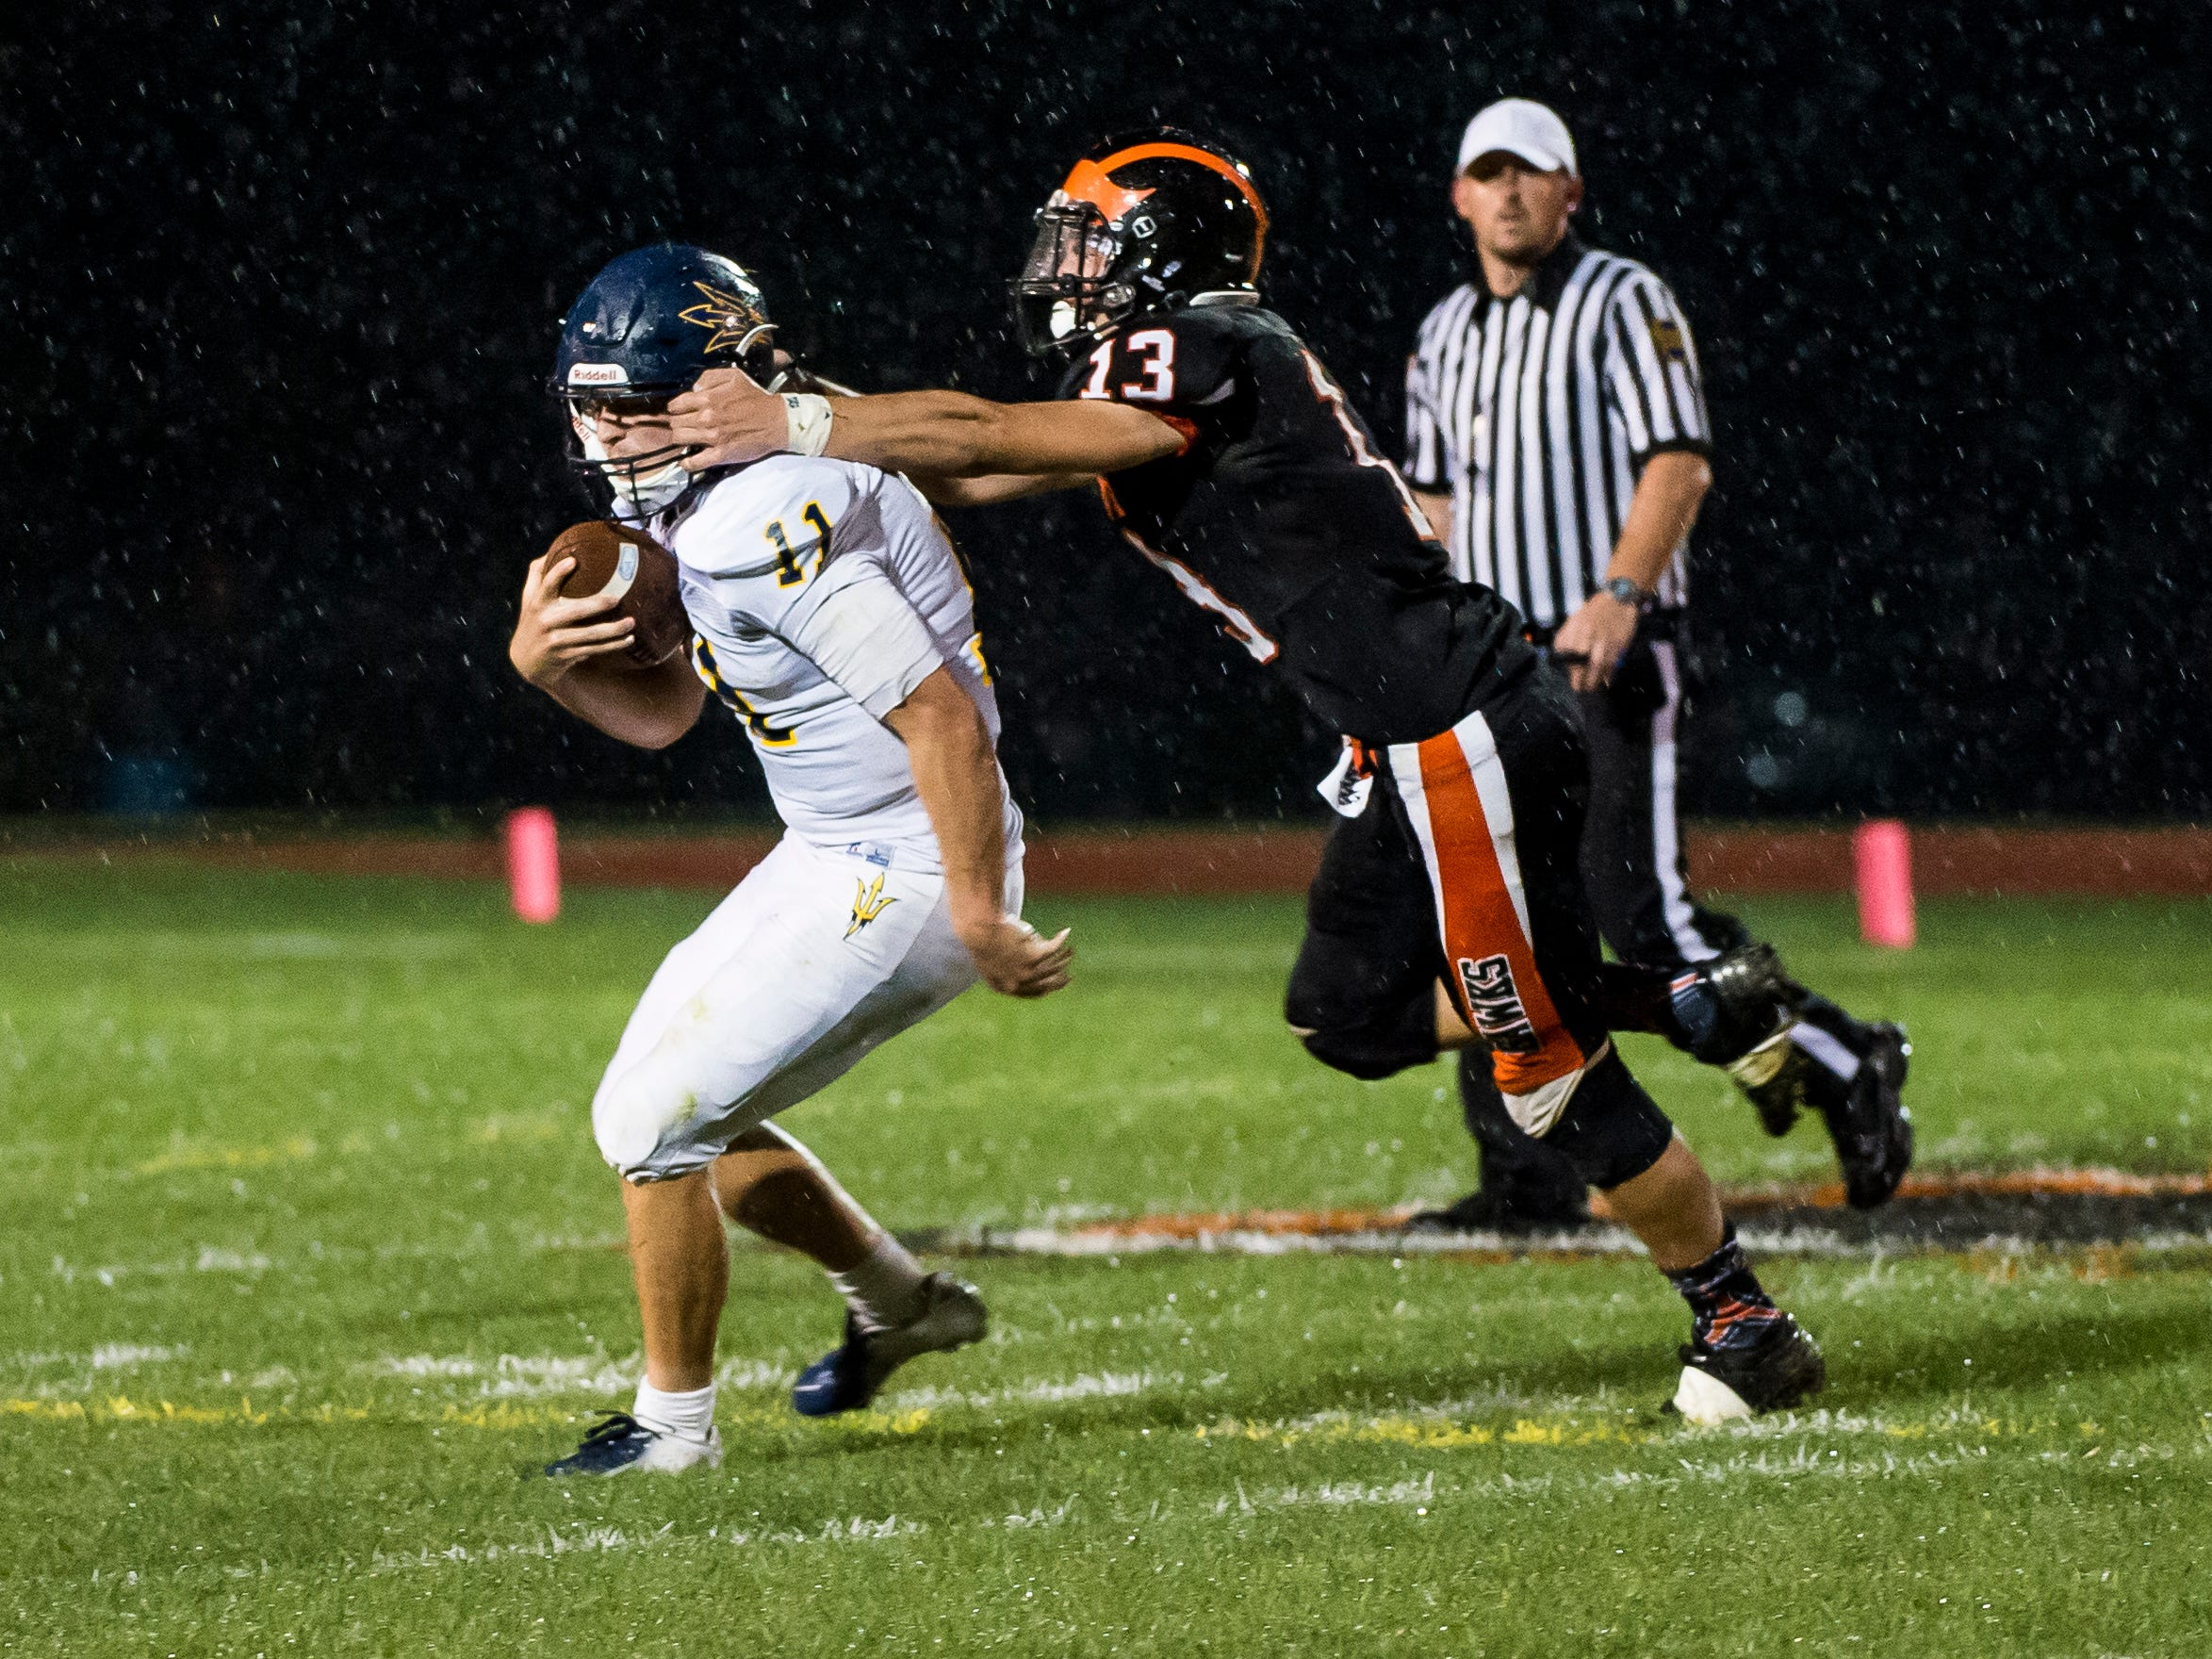 Hanover's Josh Postell tackles Greencastle Antrim's Max McDowell in the backfield during a game on Friday, September 7, 2018.